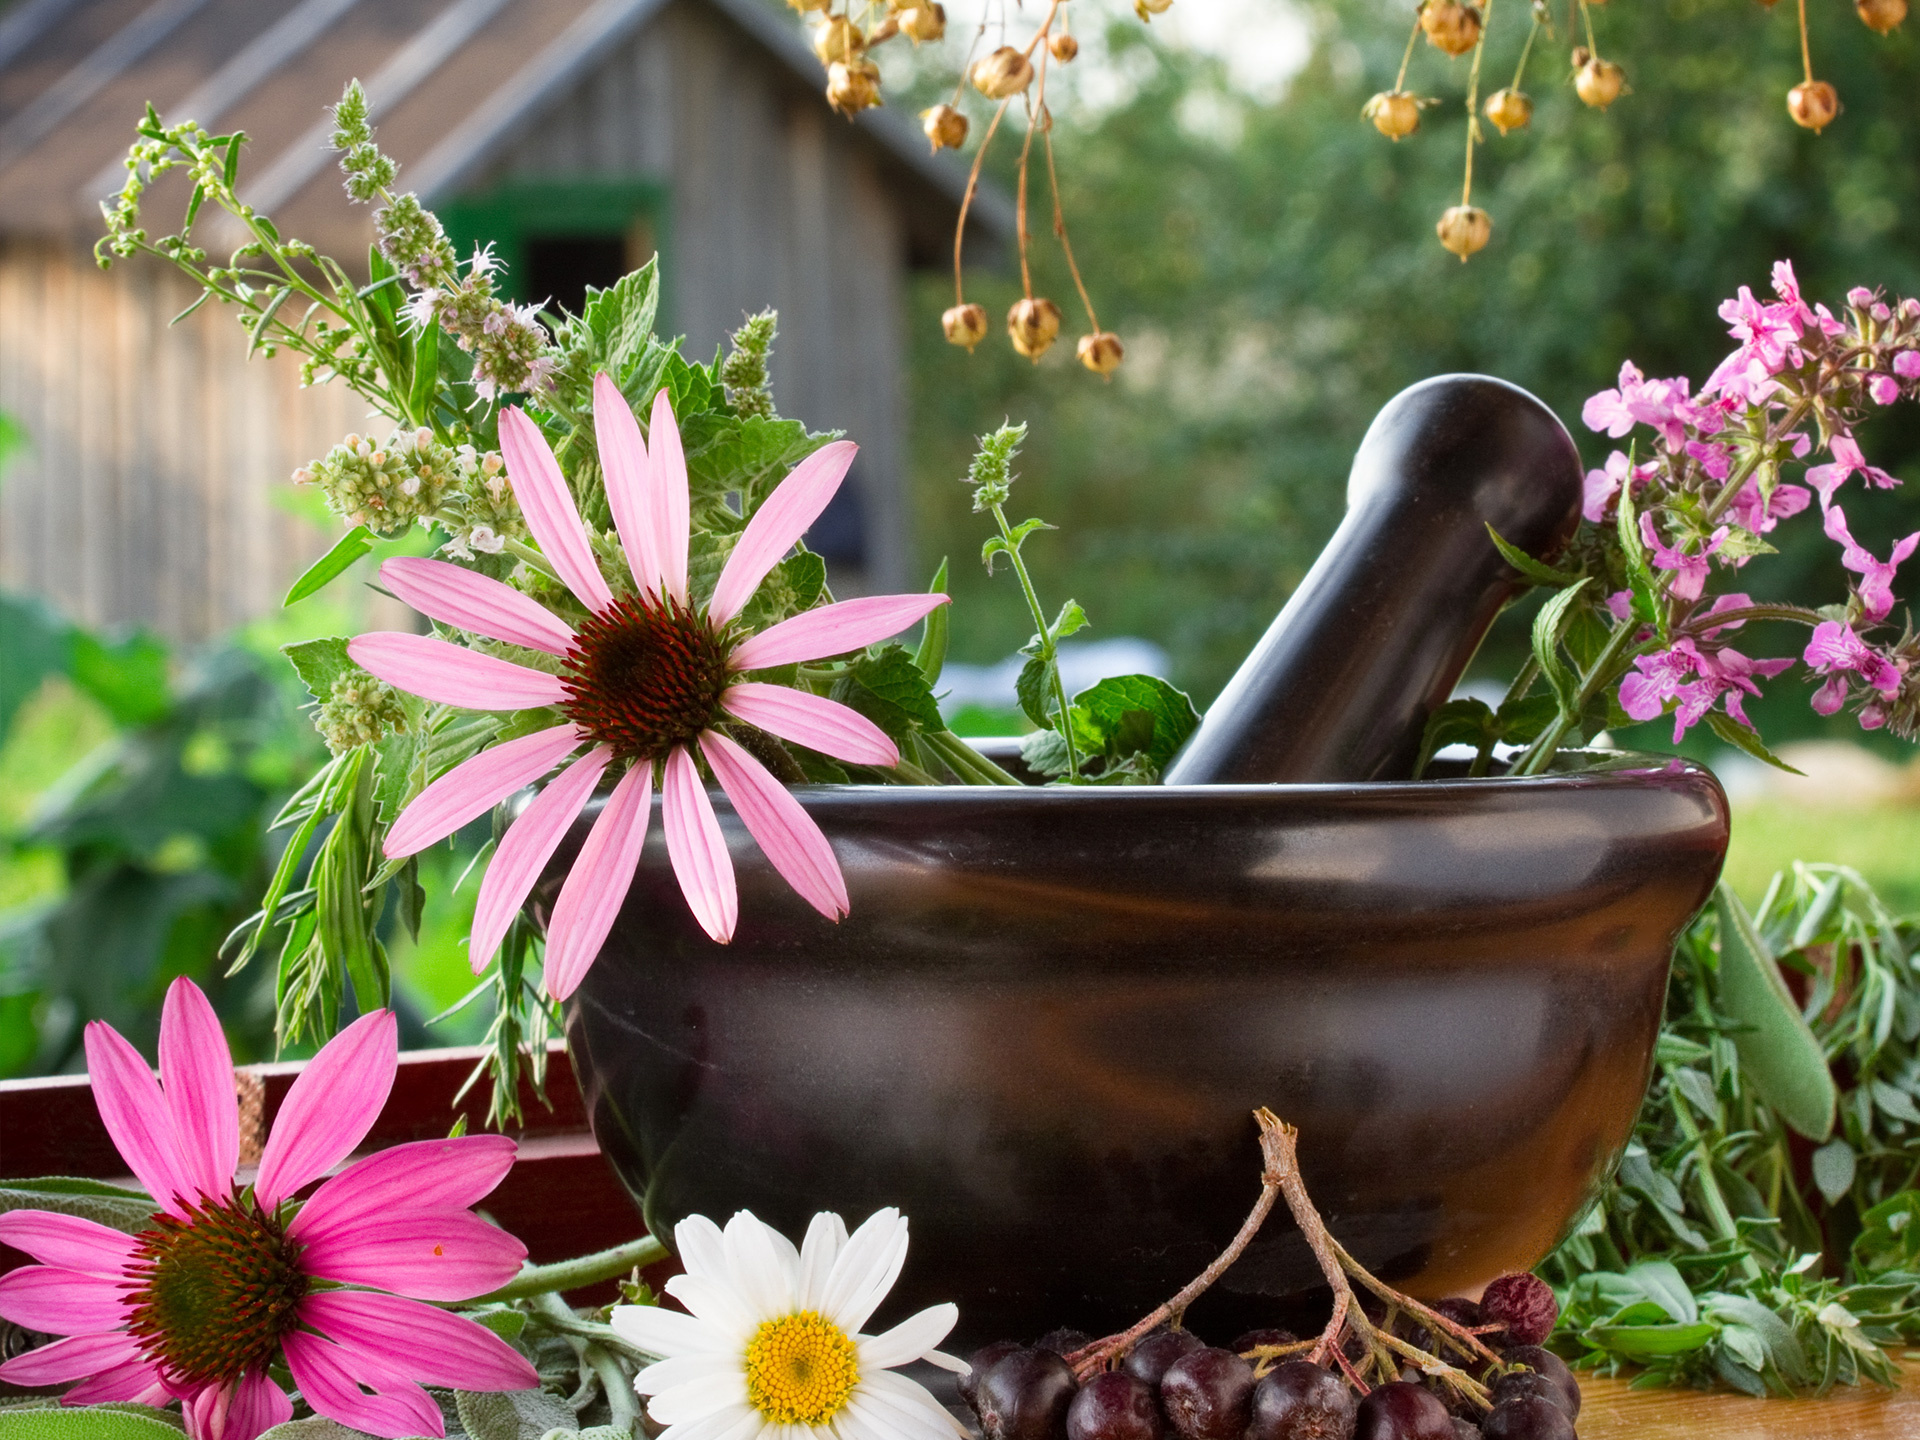 Herbs & Nature Products